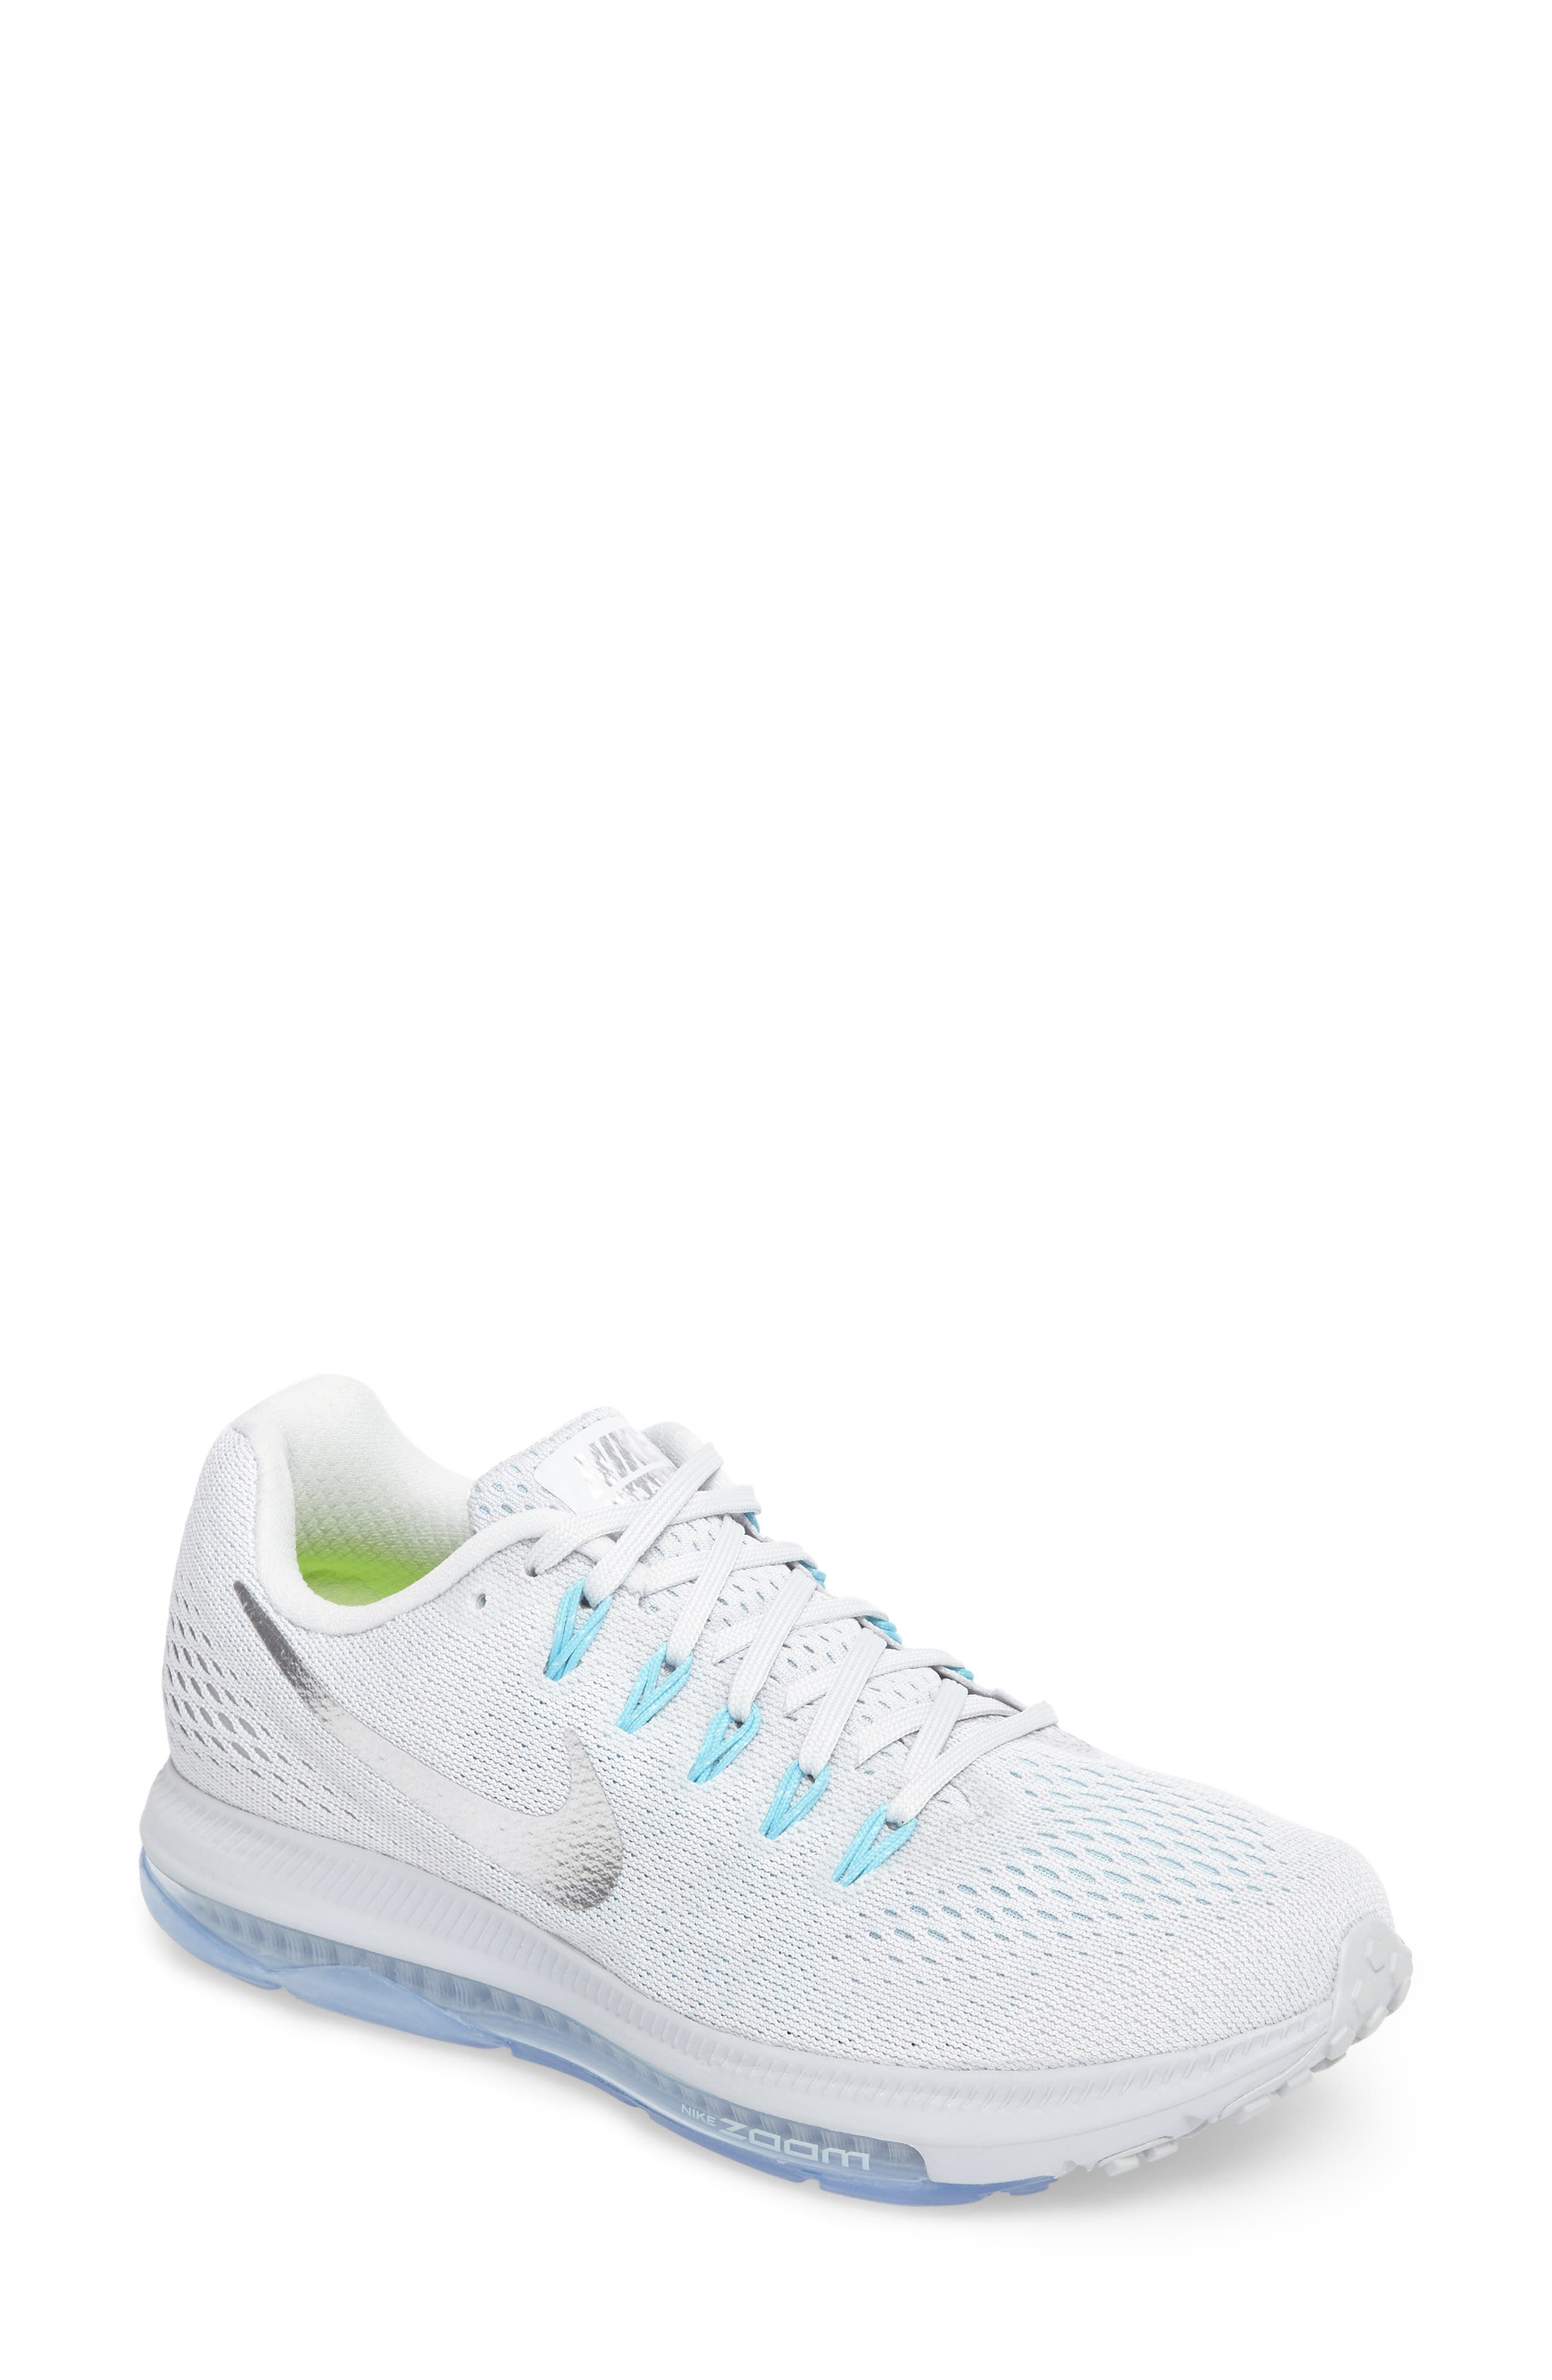 Main Image - Nike Air Zoom All Out Running Shoe (Women)